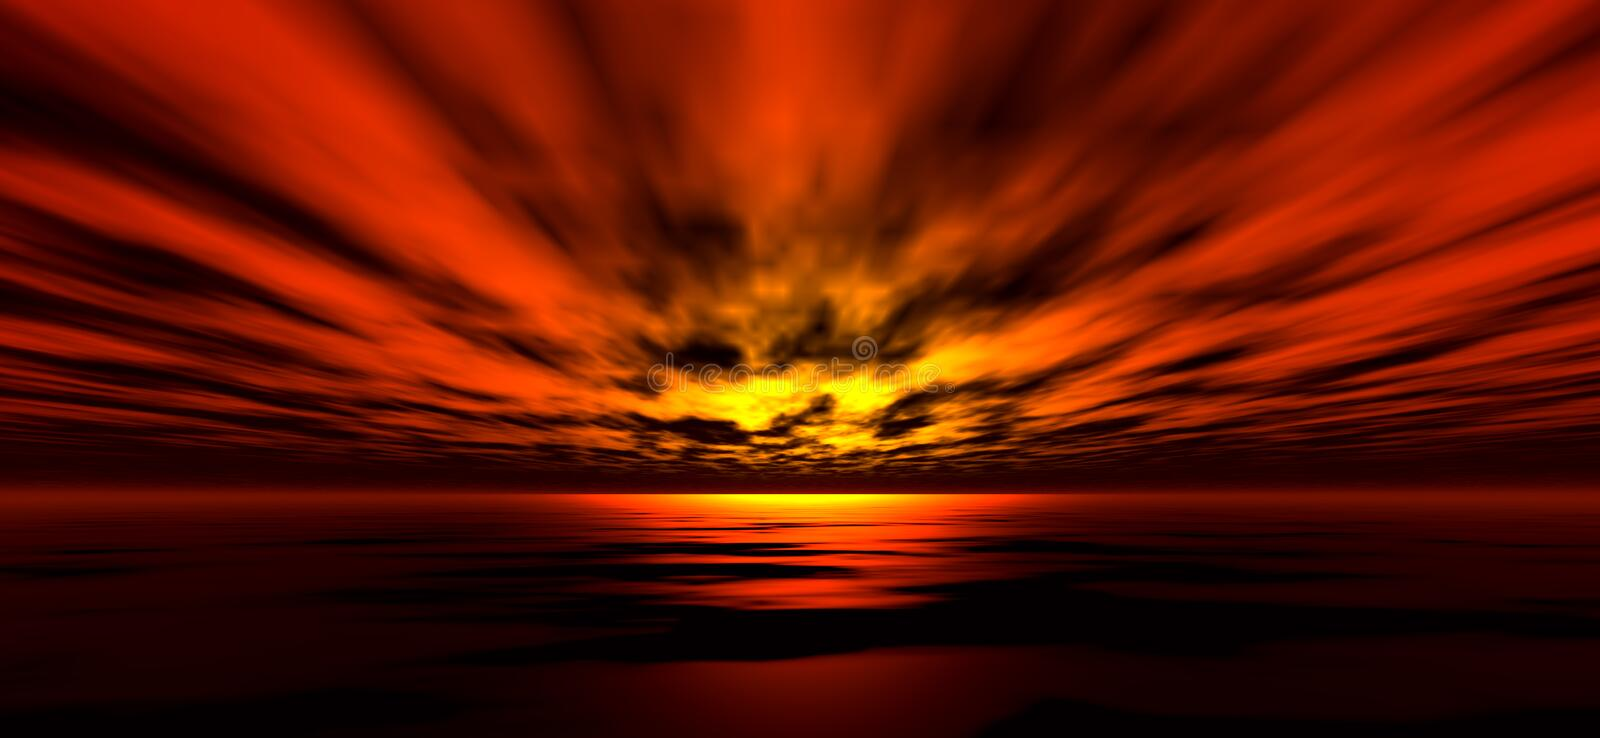 Sunset background 5. Sunset background